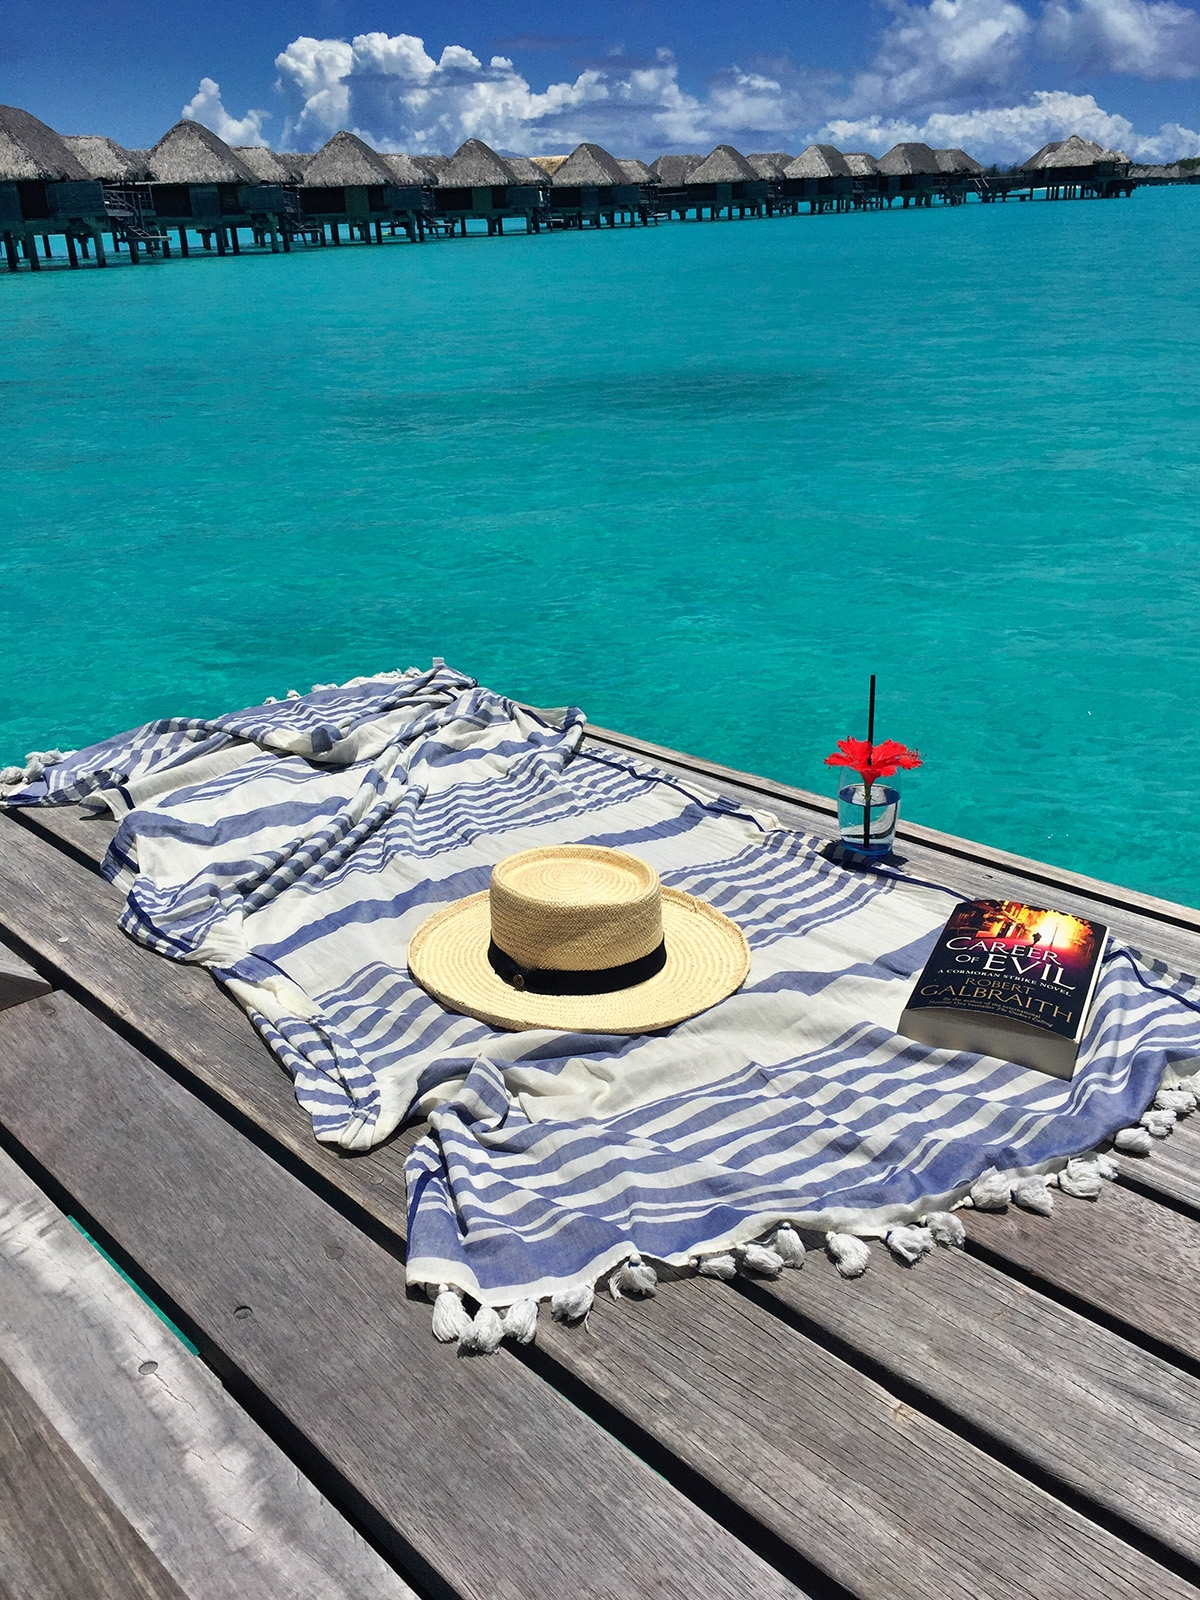 A towel, straw hat, book and glass of water sit on the floating wooden boardwalk and look out to the floating villas atop the bright blue ocean